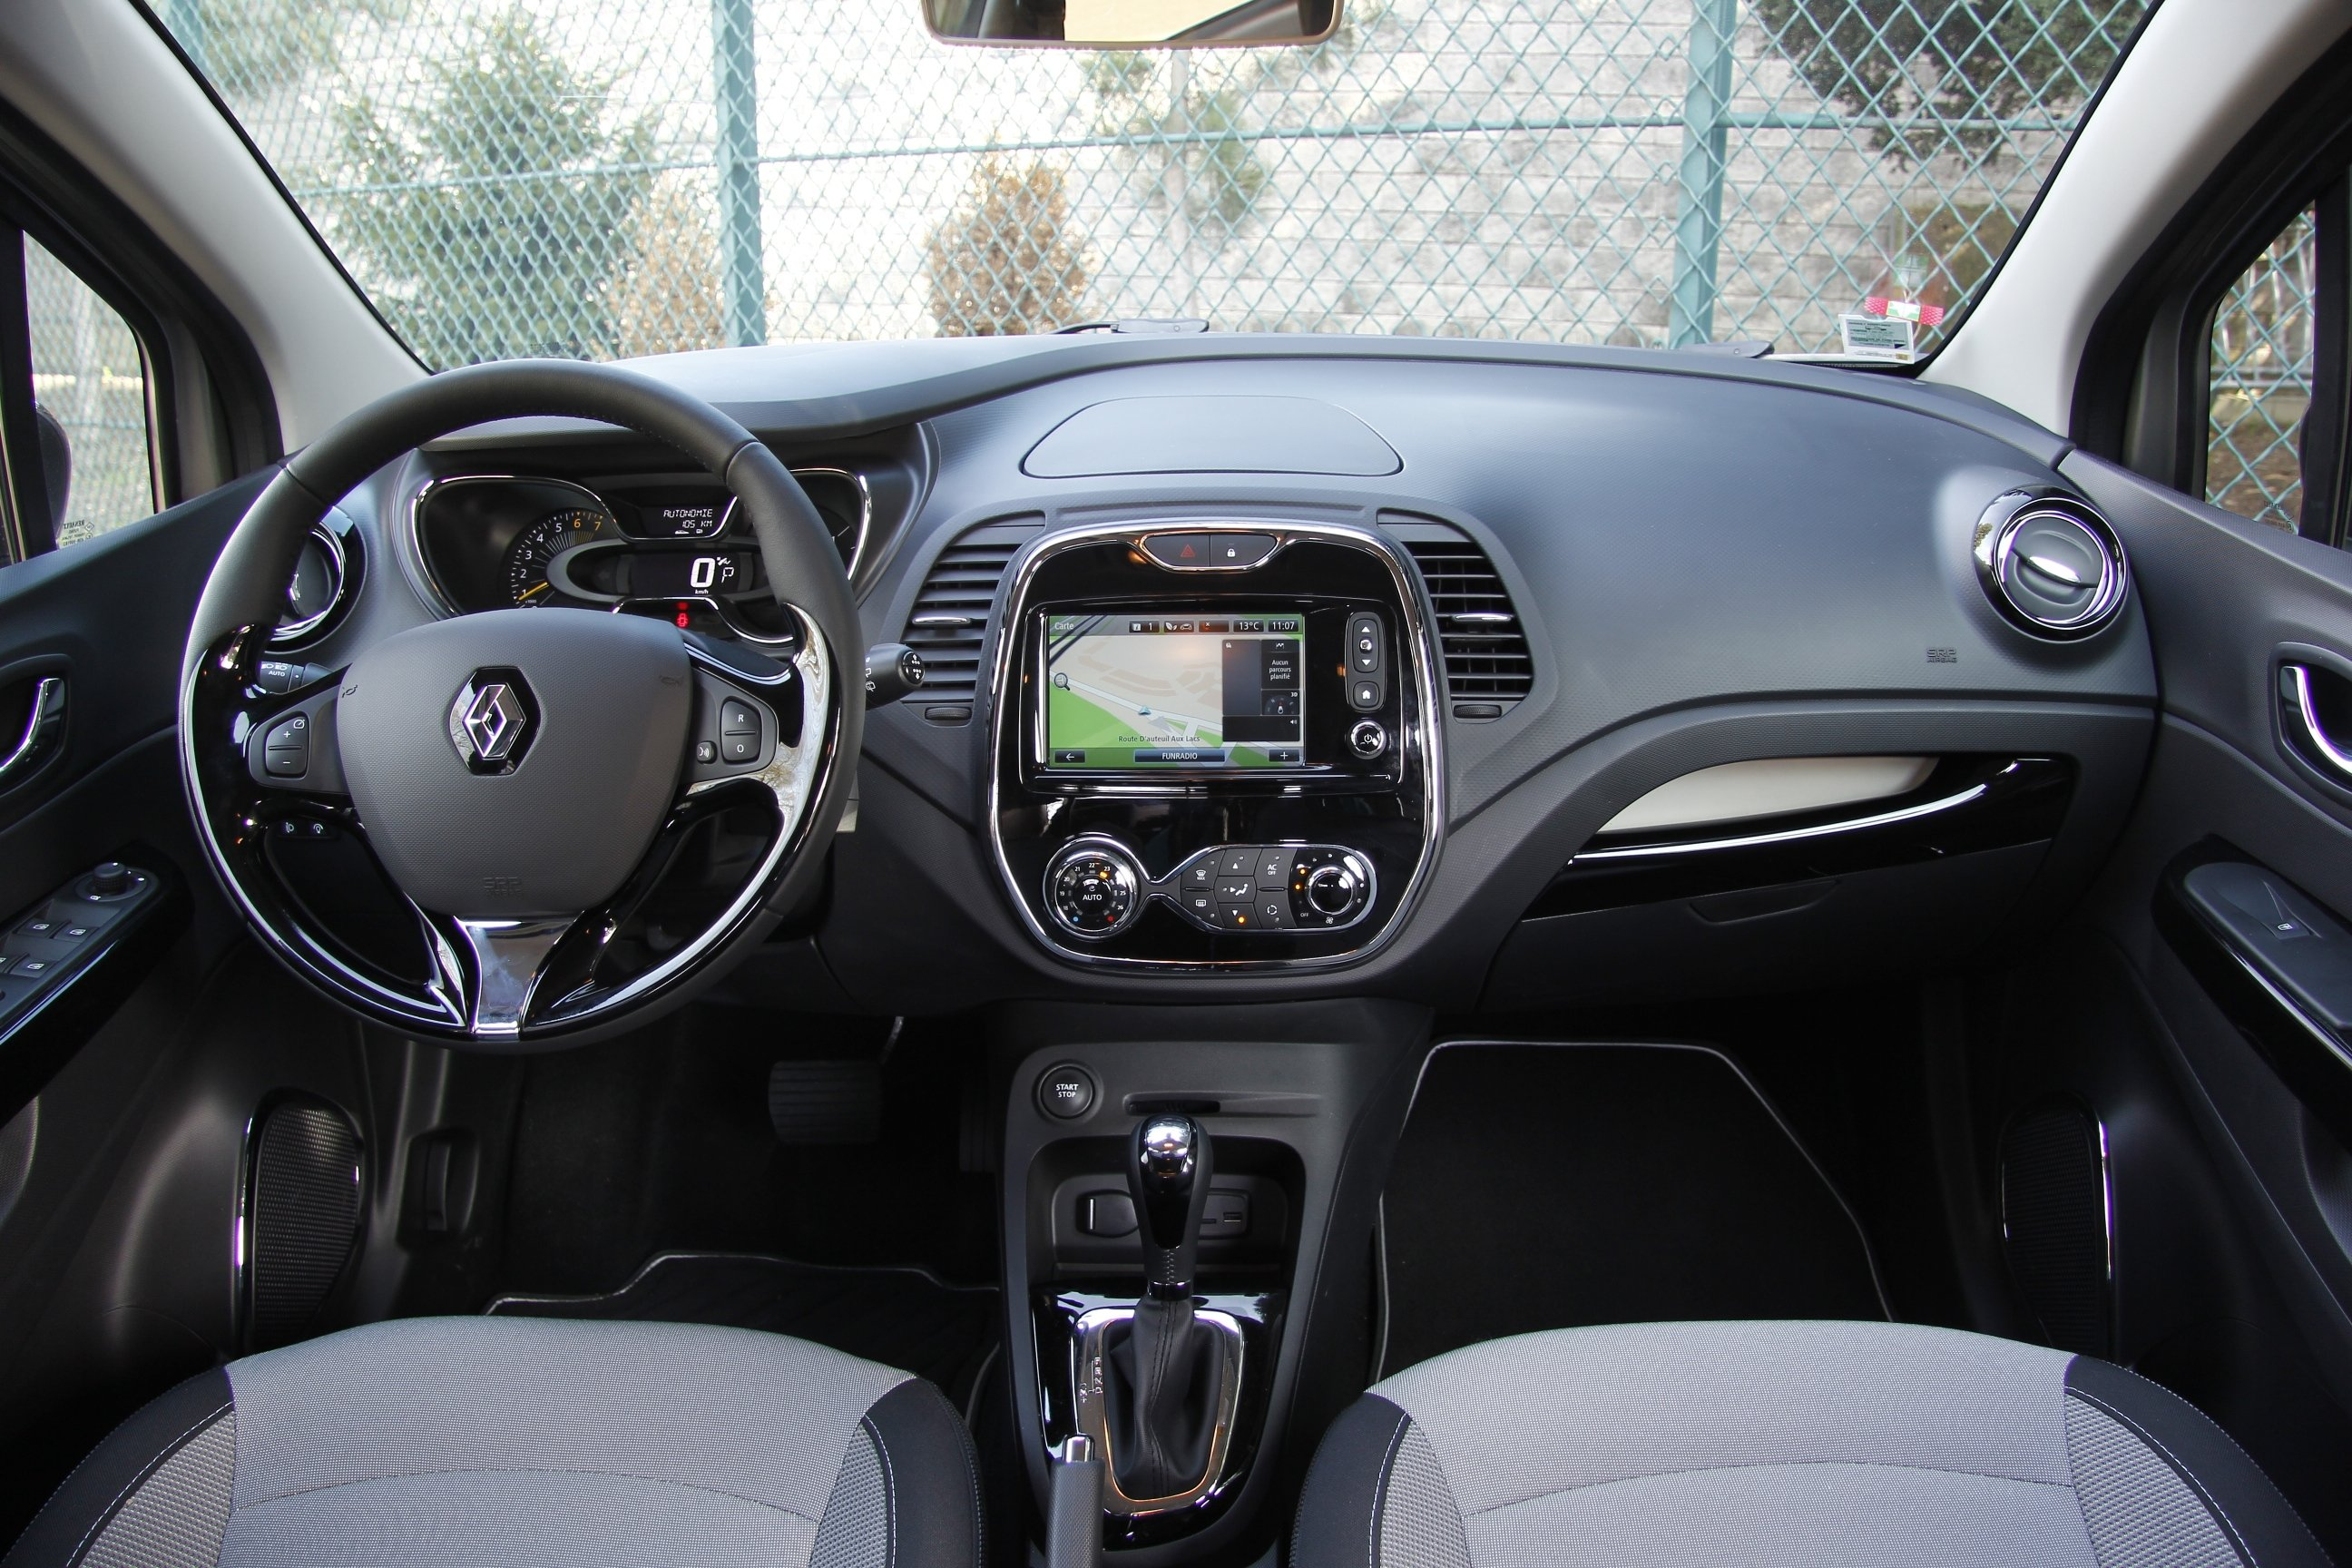 2014 renault captur 1 2 tce 120 intens edc wallpaper 2592x1728 369166 wallpaperup. Black Bedroom Furniture Sets. Home Design Ideas